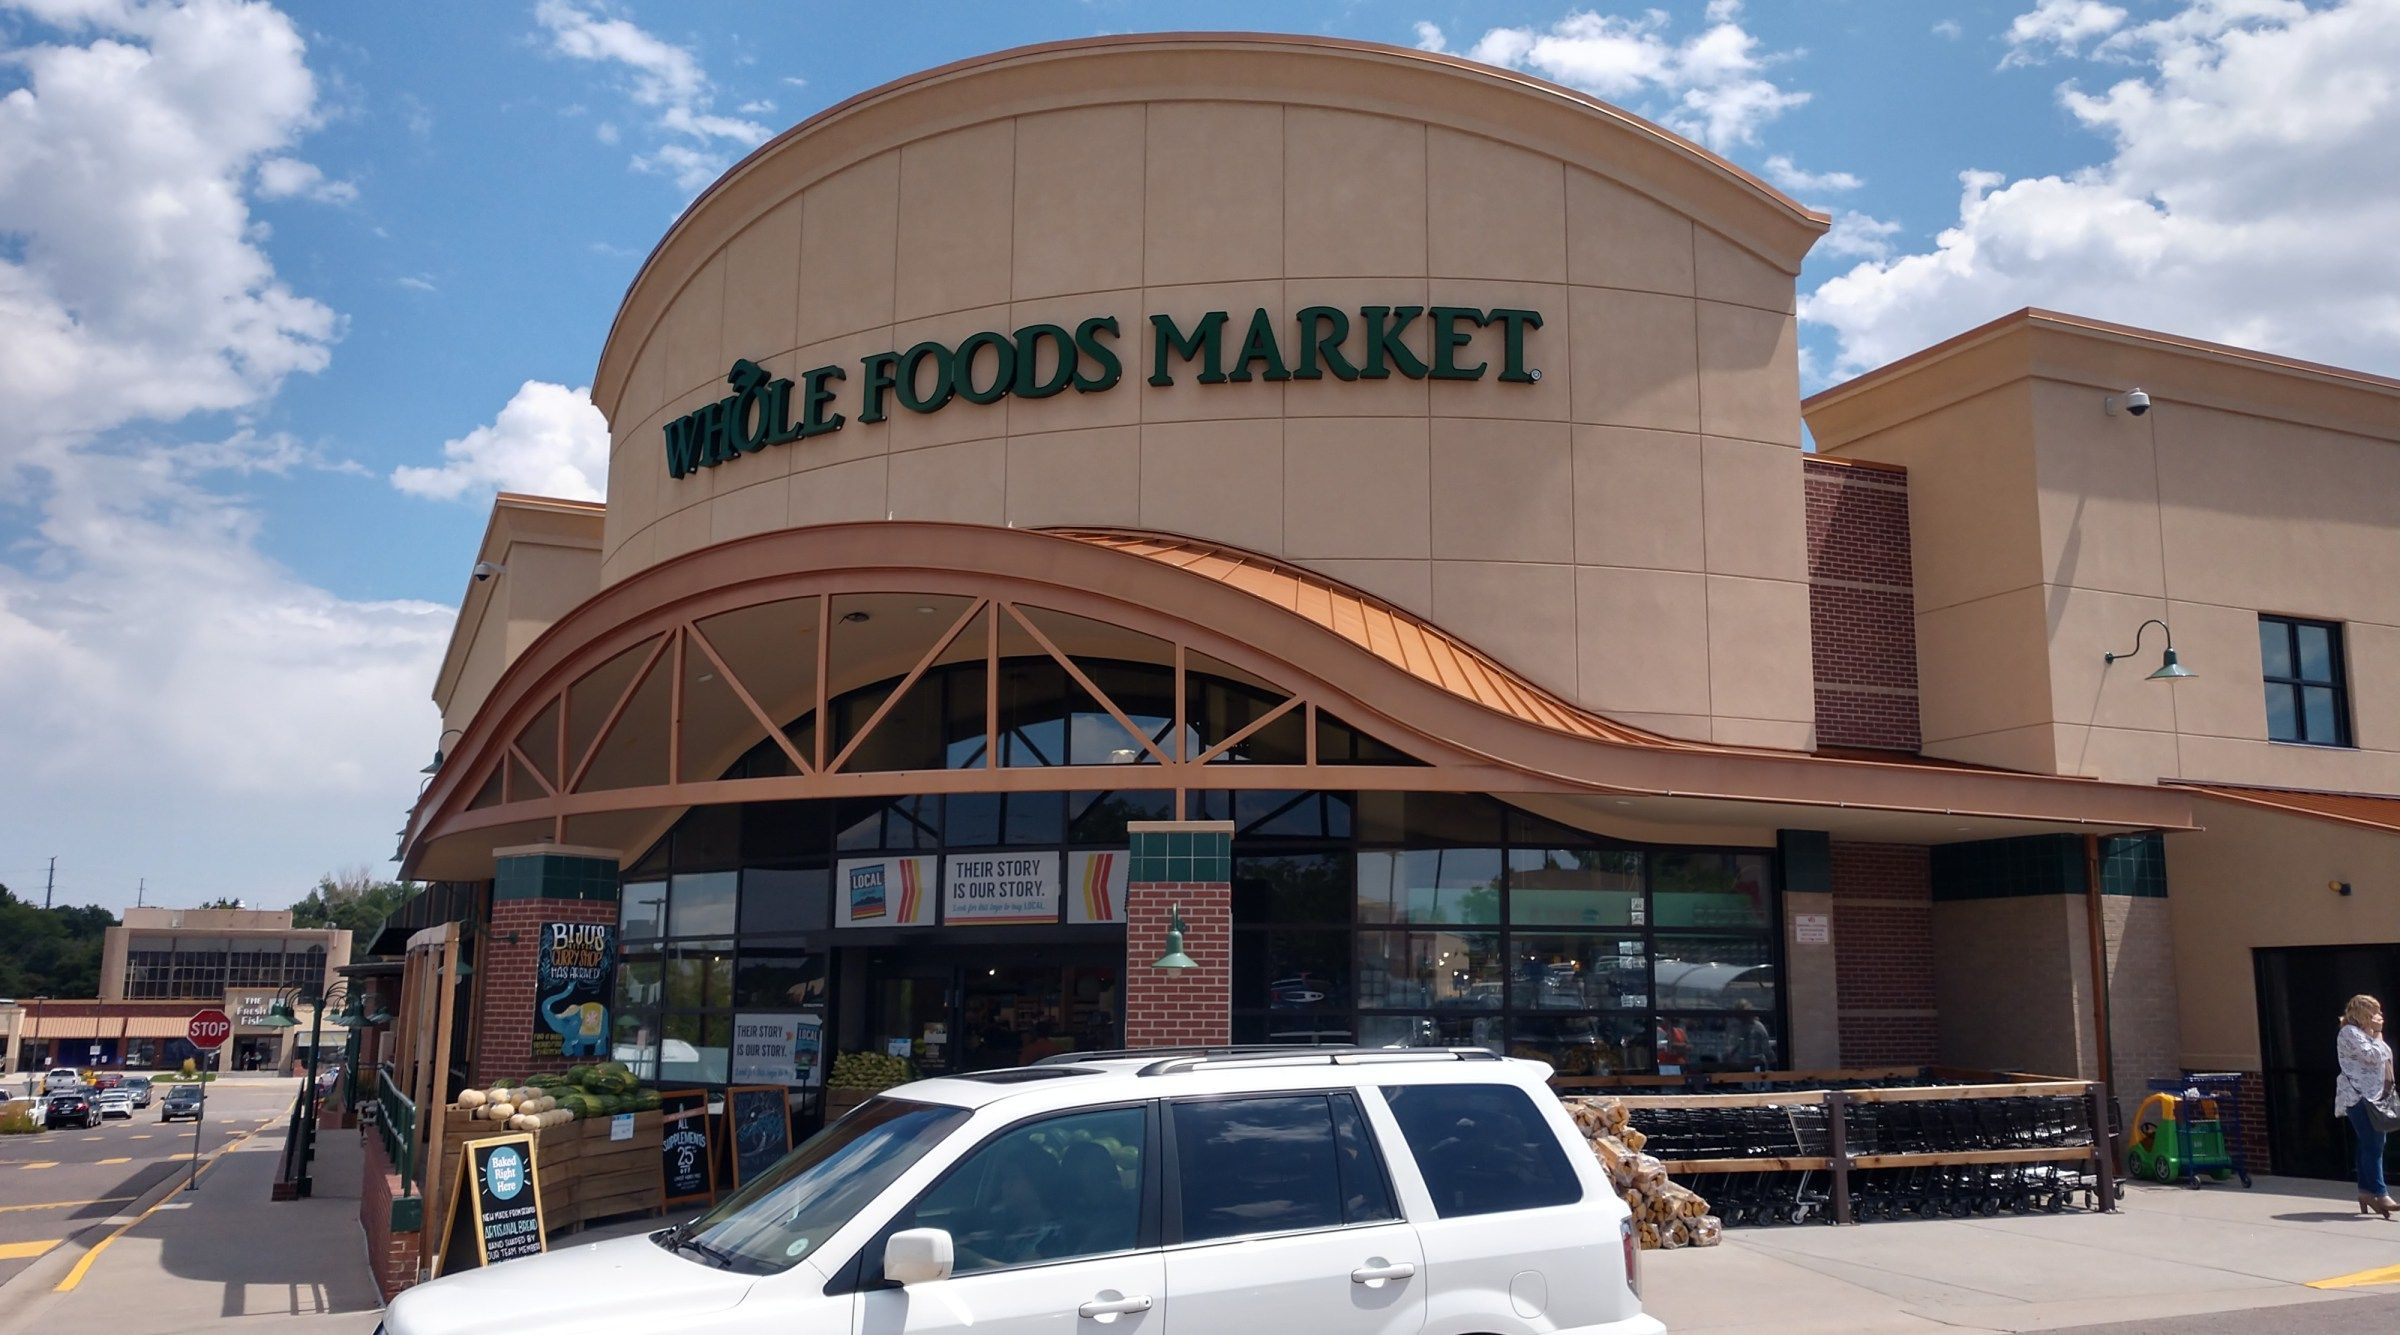 Some weird aspects of amazon and whole foods market mad